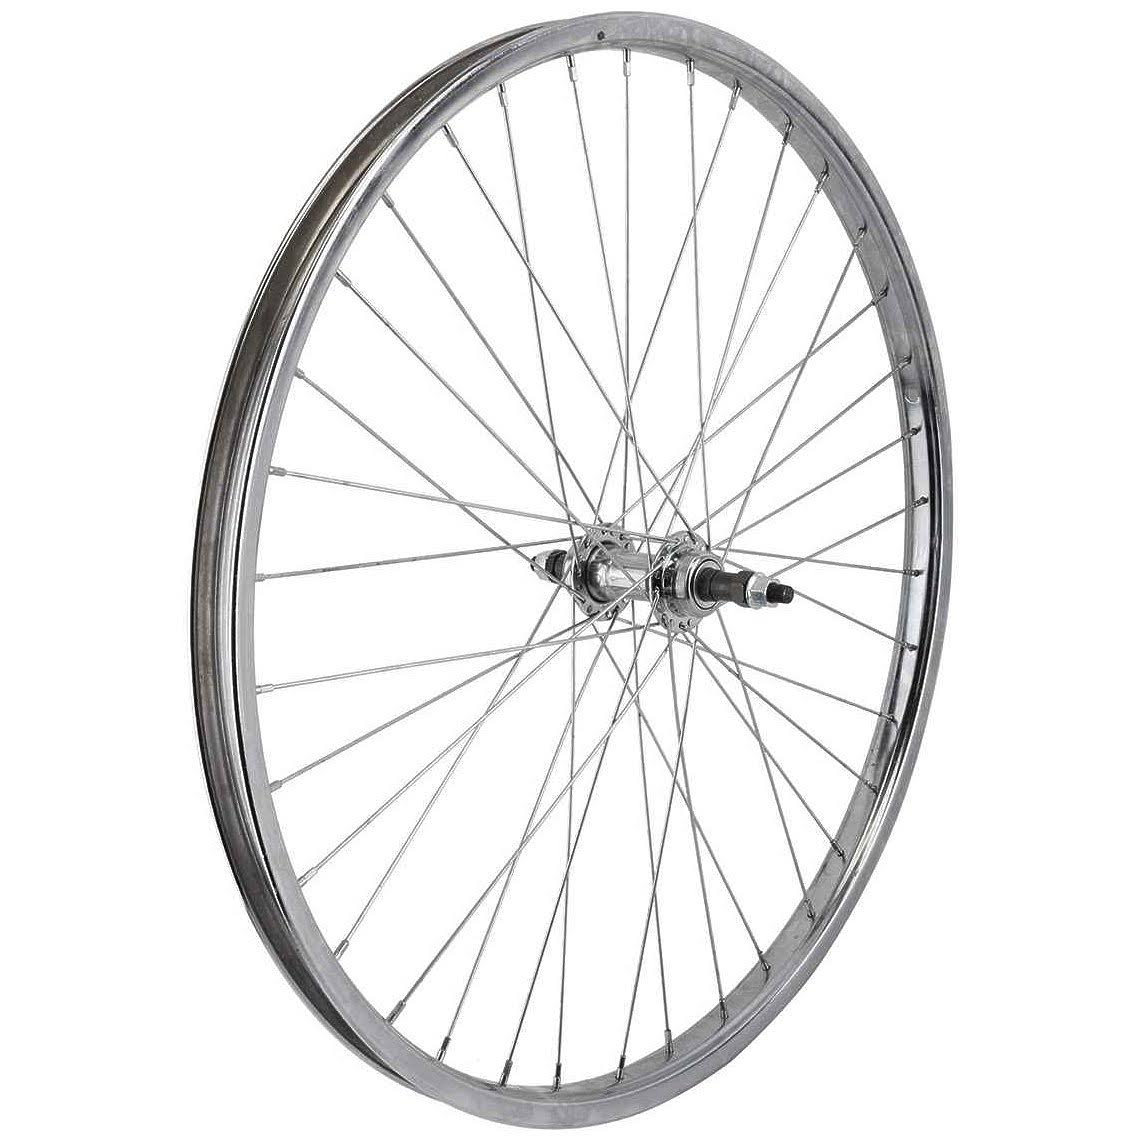 "Wheel Master Rear Bicycle Wheel - Silver, 26"" x 1.75"""